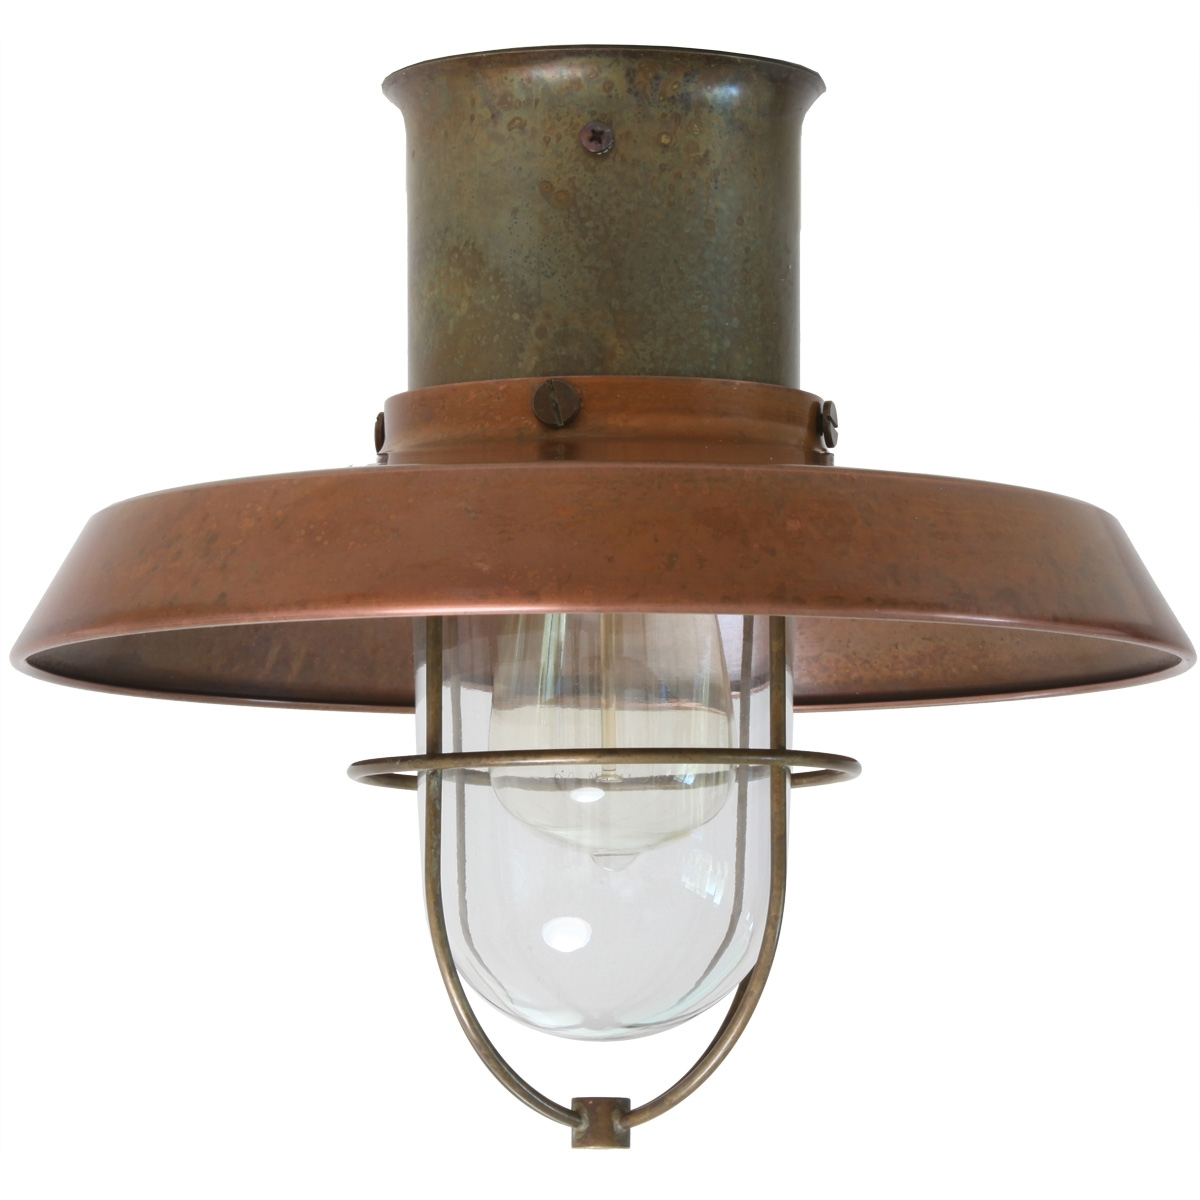 Inspiration about Maritime Outdoor Ceiling Light Il Patio 225.04.or – Eames Lighting With Regard To Outdoor Ceiling Lights For Patio (#10 of 15)